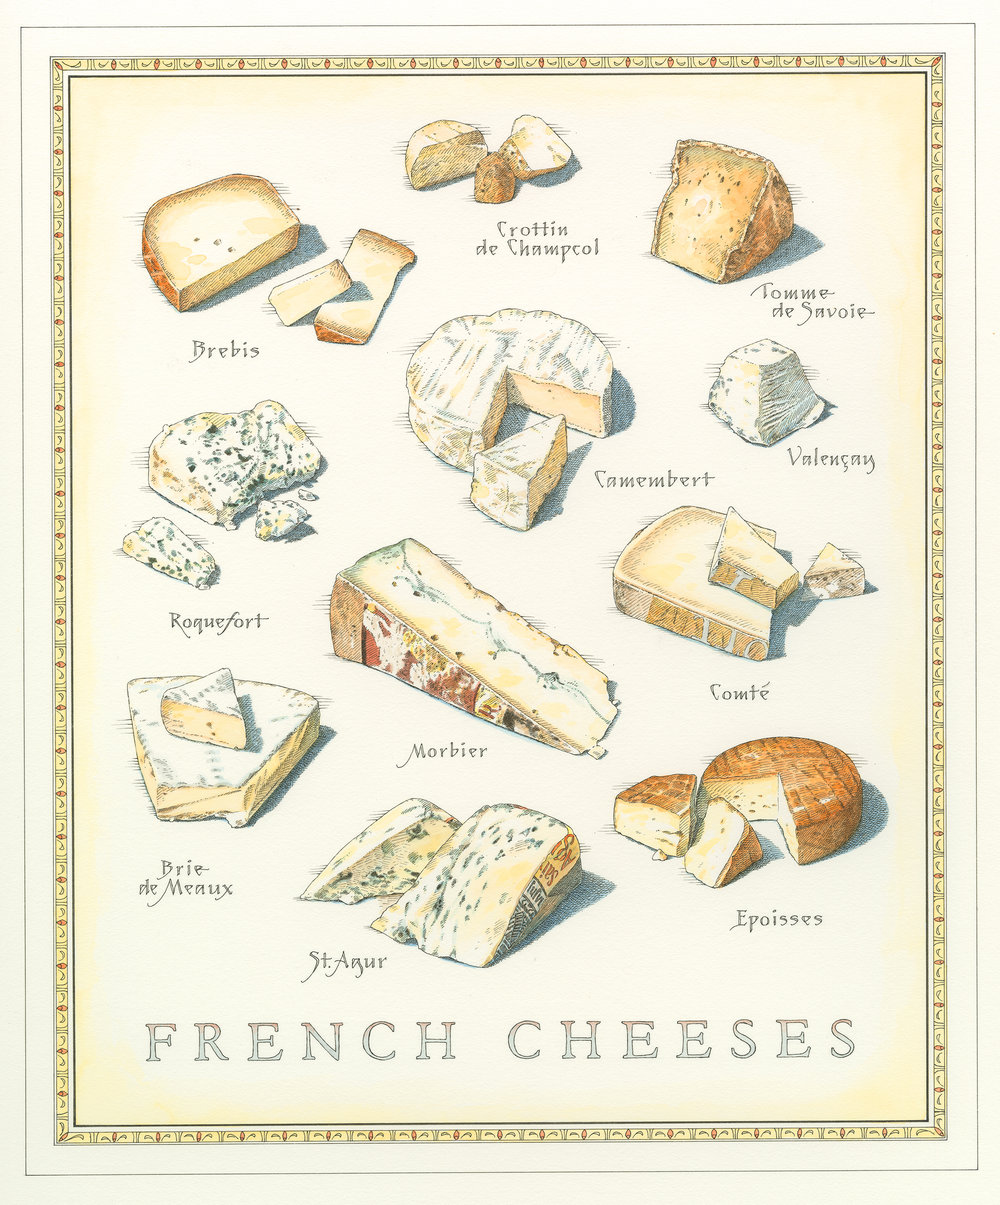 French Cheeses small018.jpg